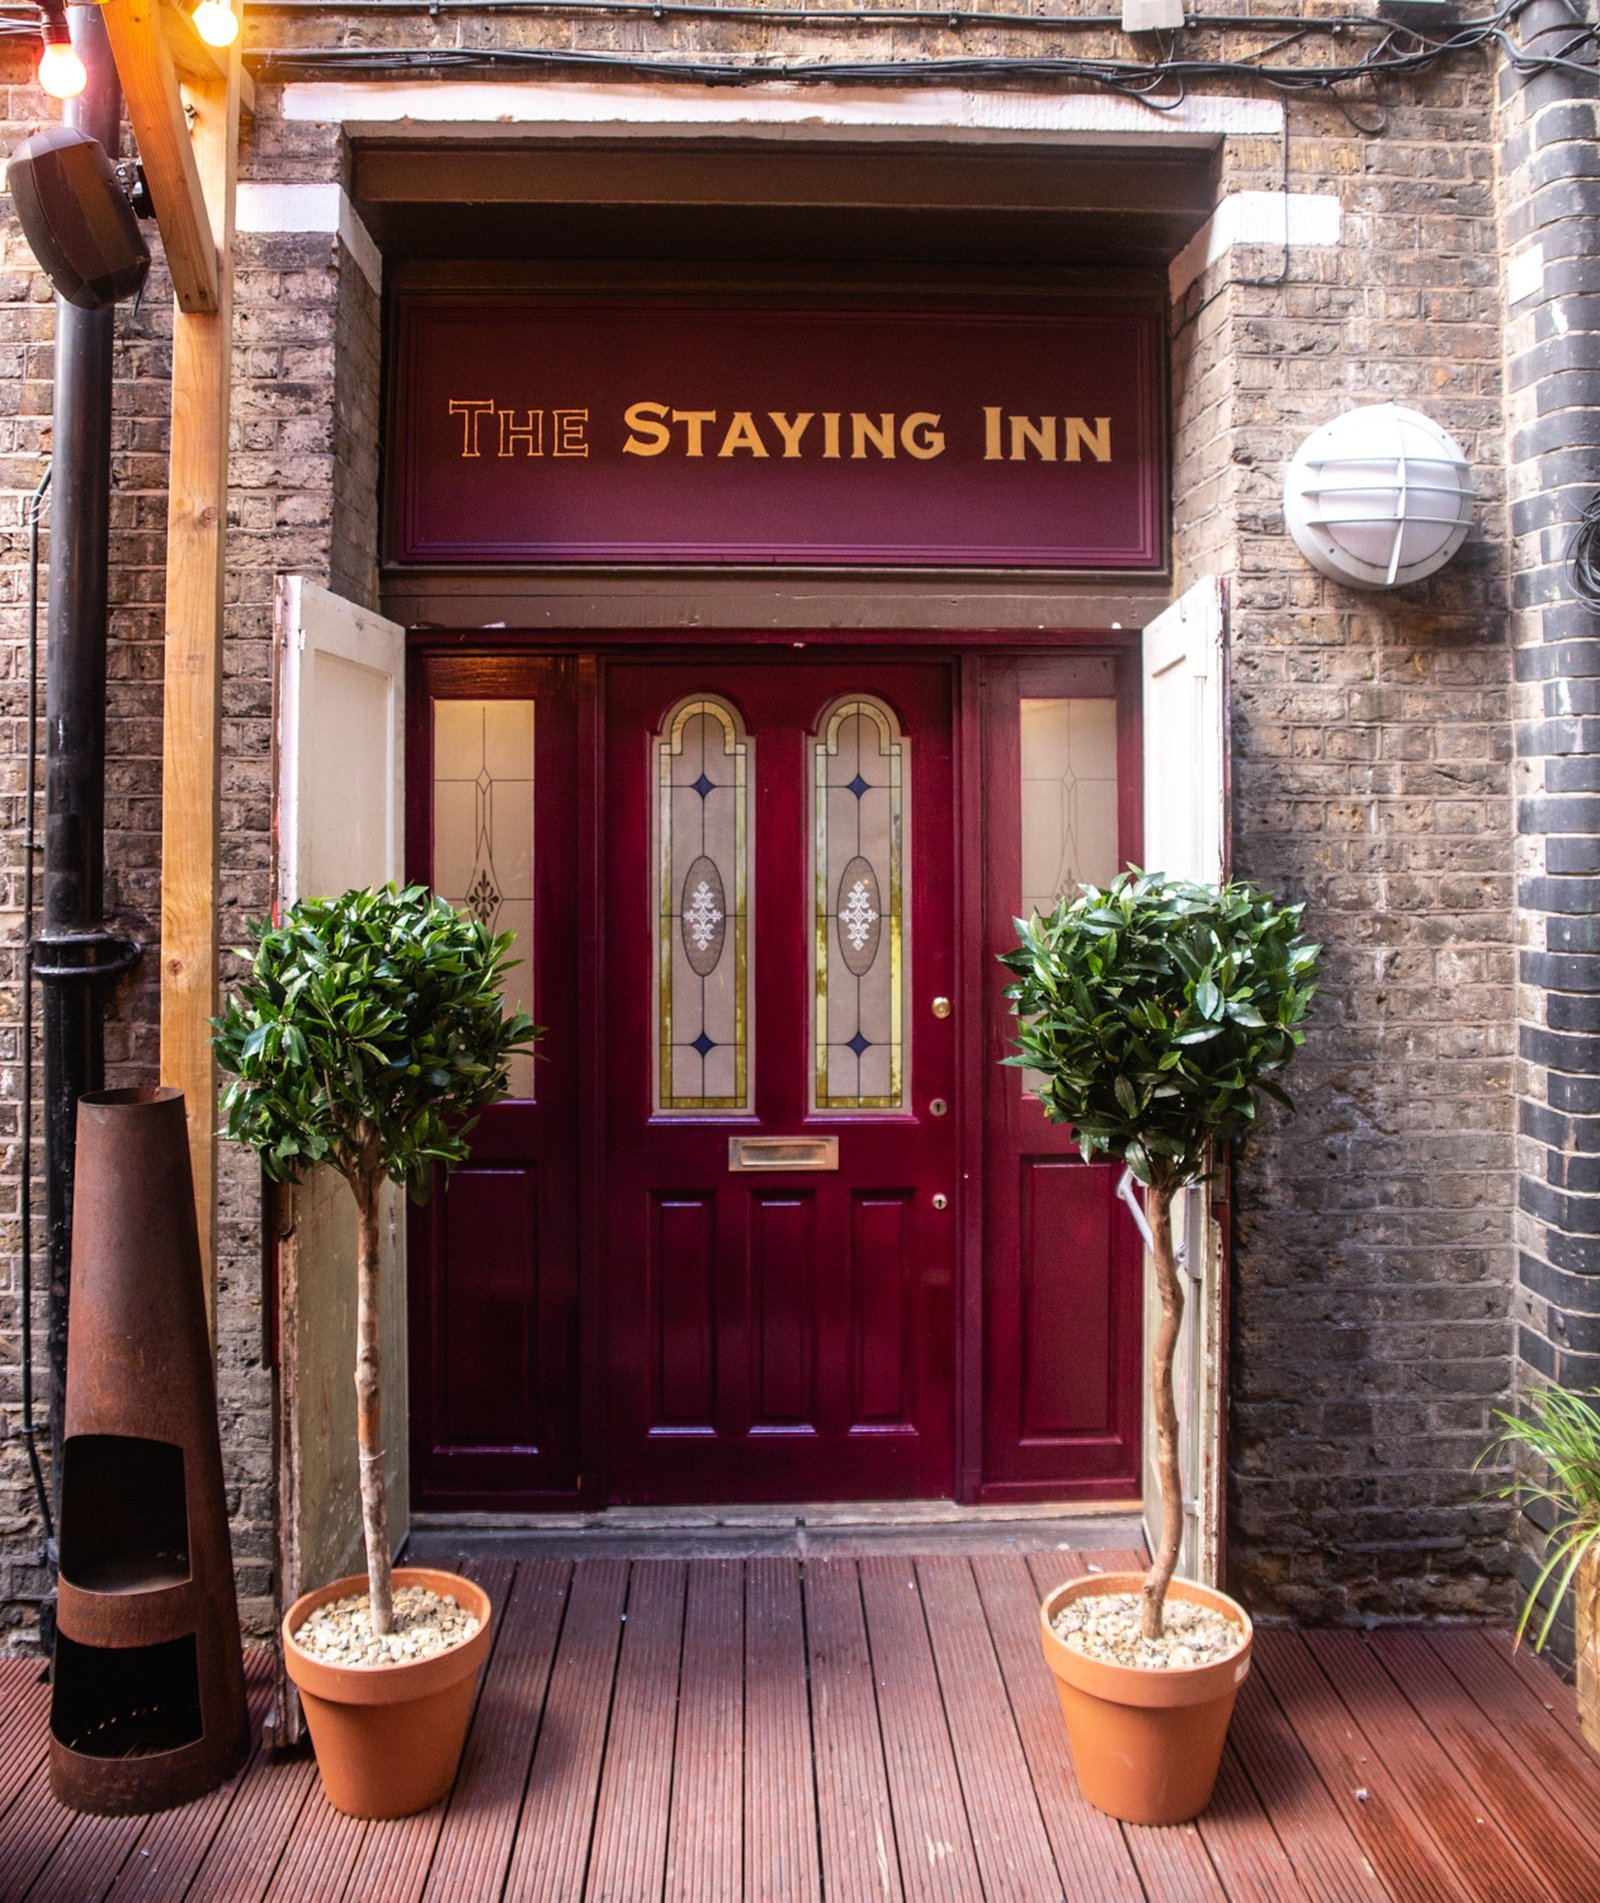 Image - A-door-able! The entrance to The Staying Inn